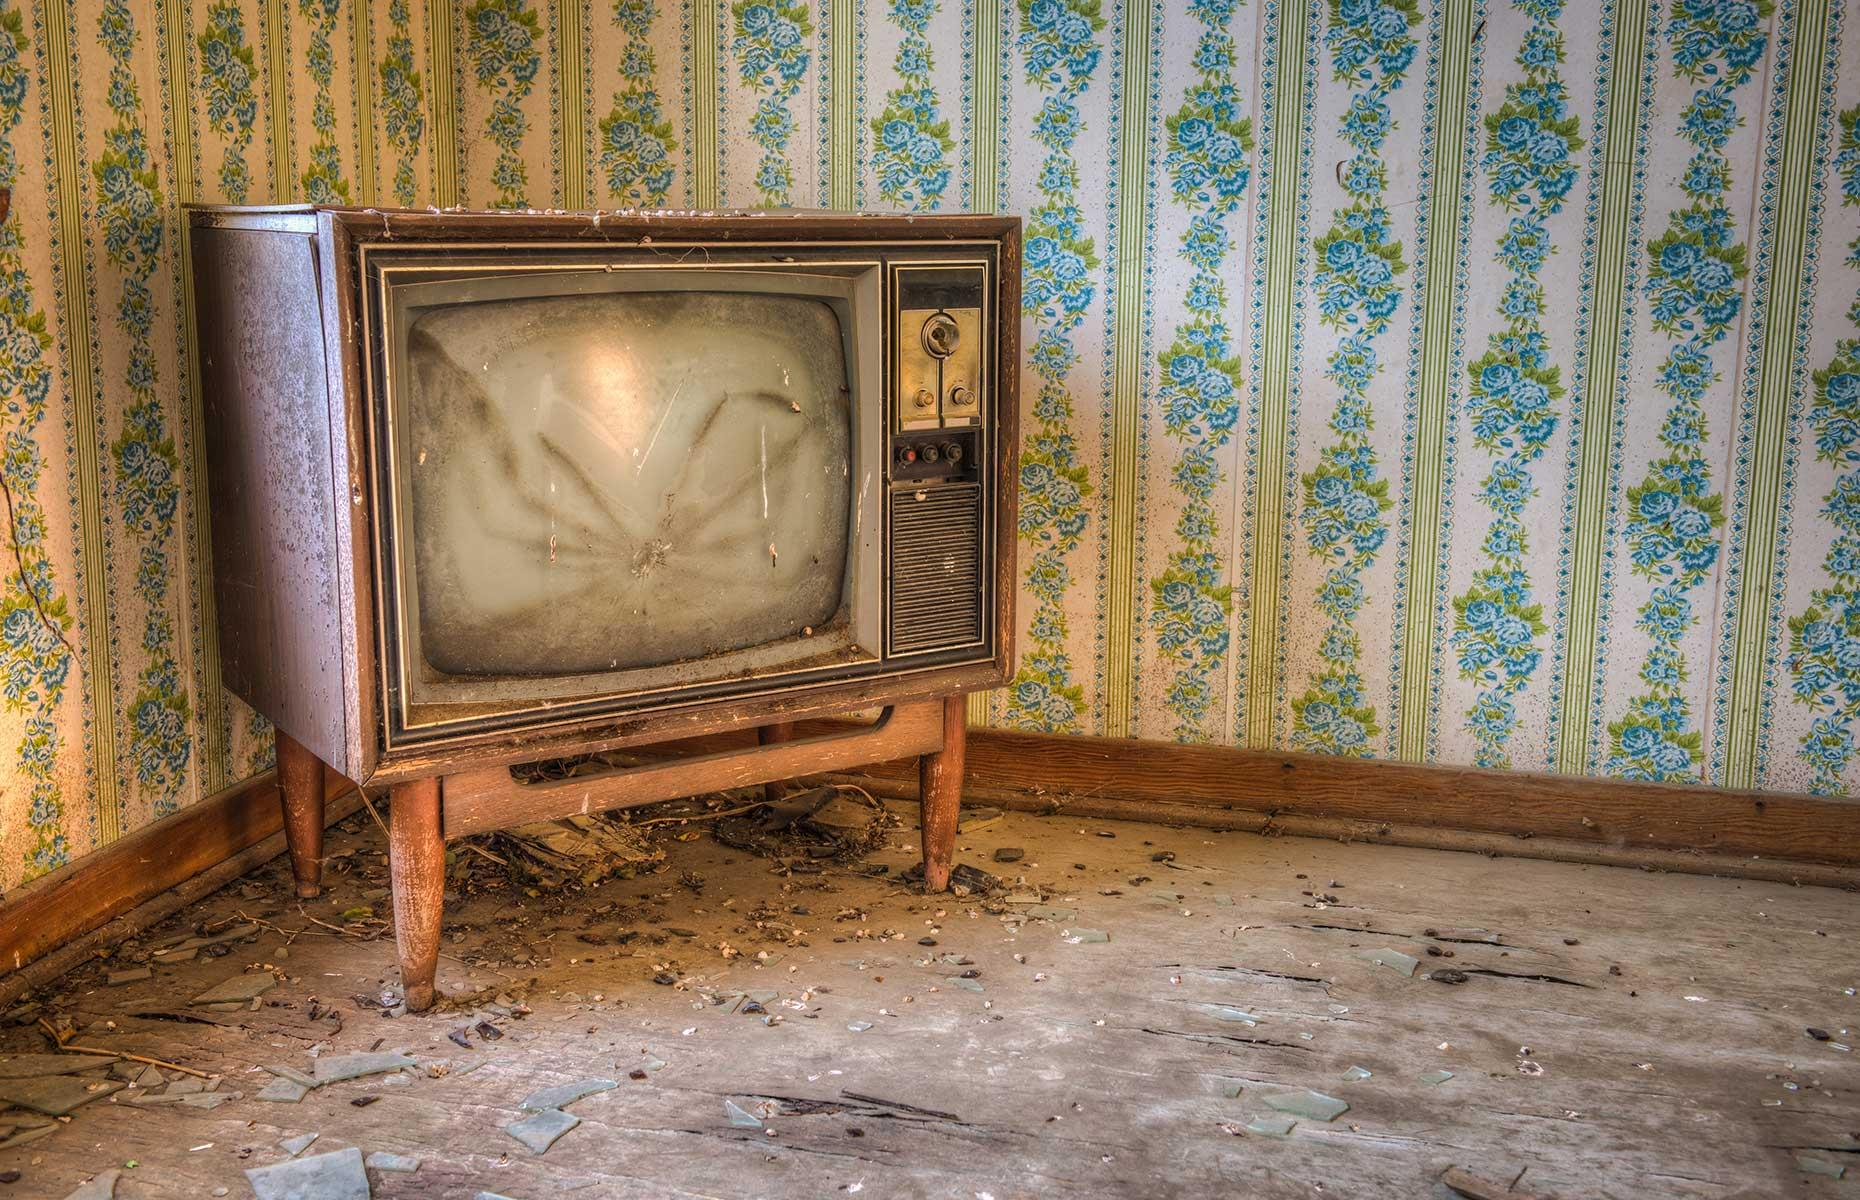 Slide 32 of 32: In addition to a community hall there are several homes still standing too. In one, sits this incredibly creepy TV set, with a spider-like smashed screen. Here are 50 other reasons to fall in love with Canada